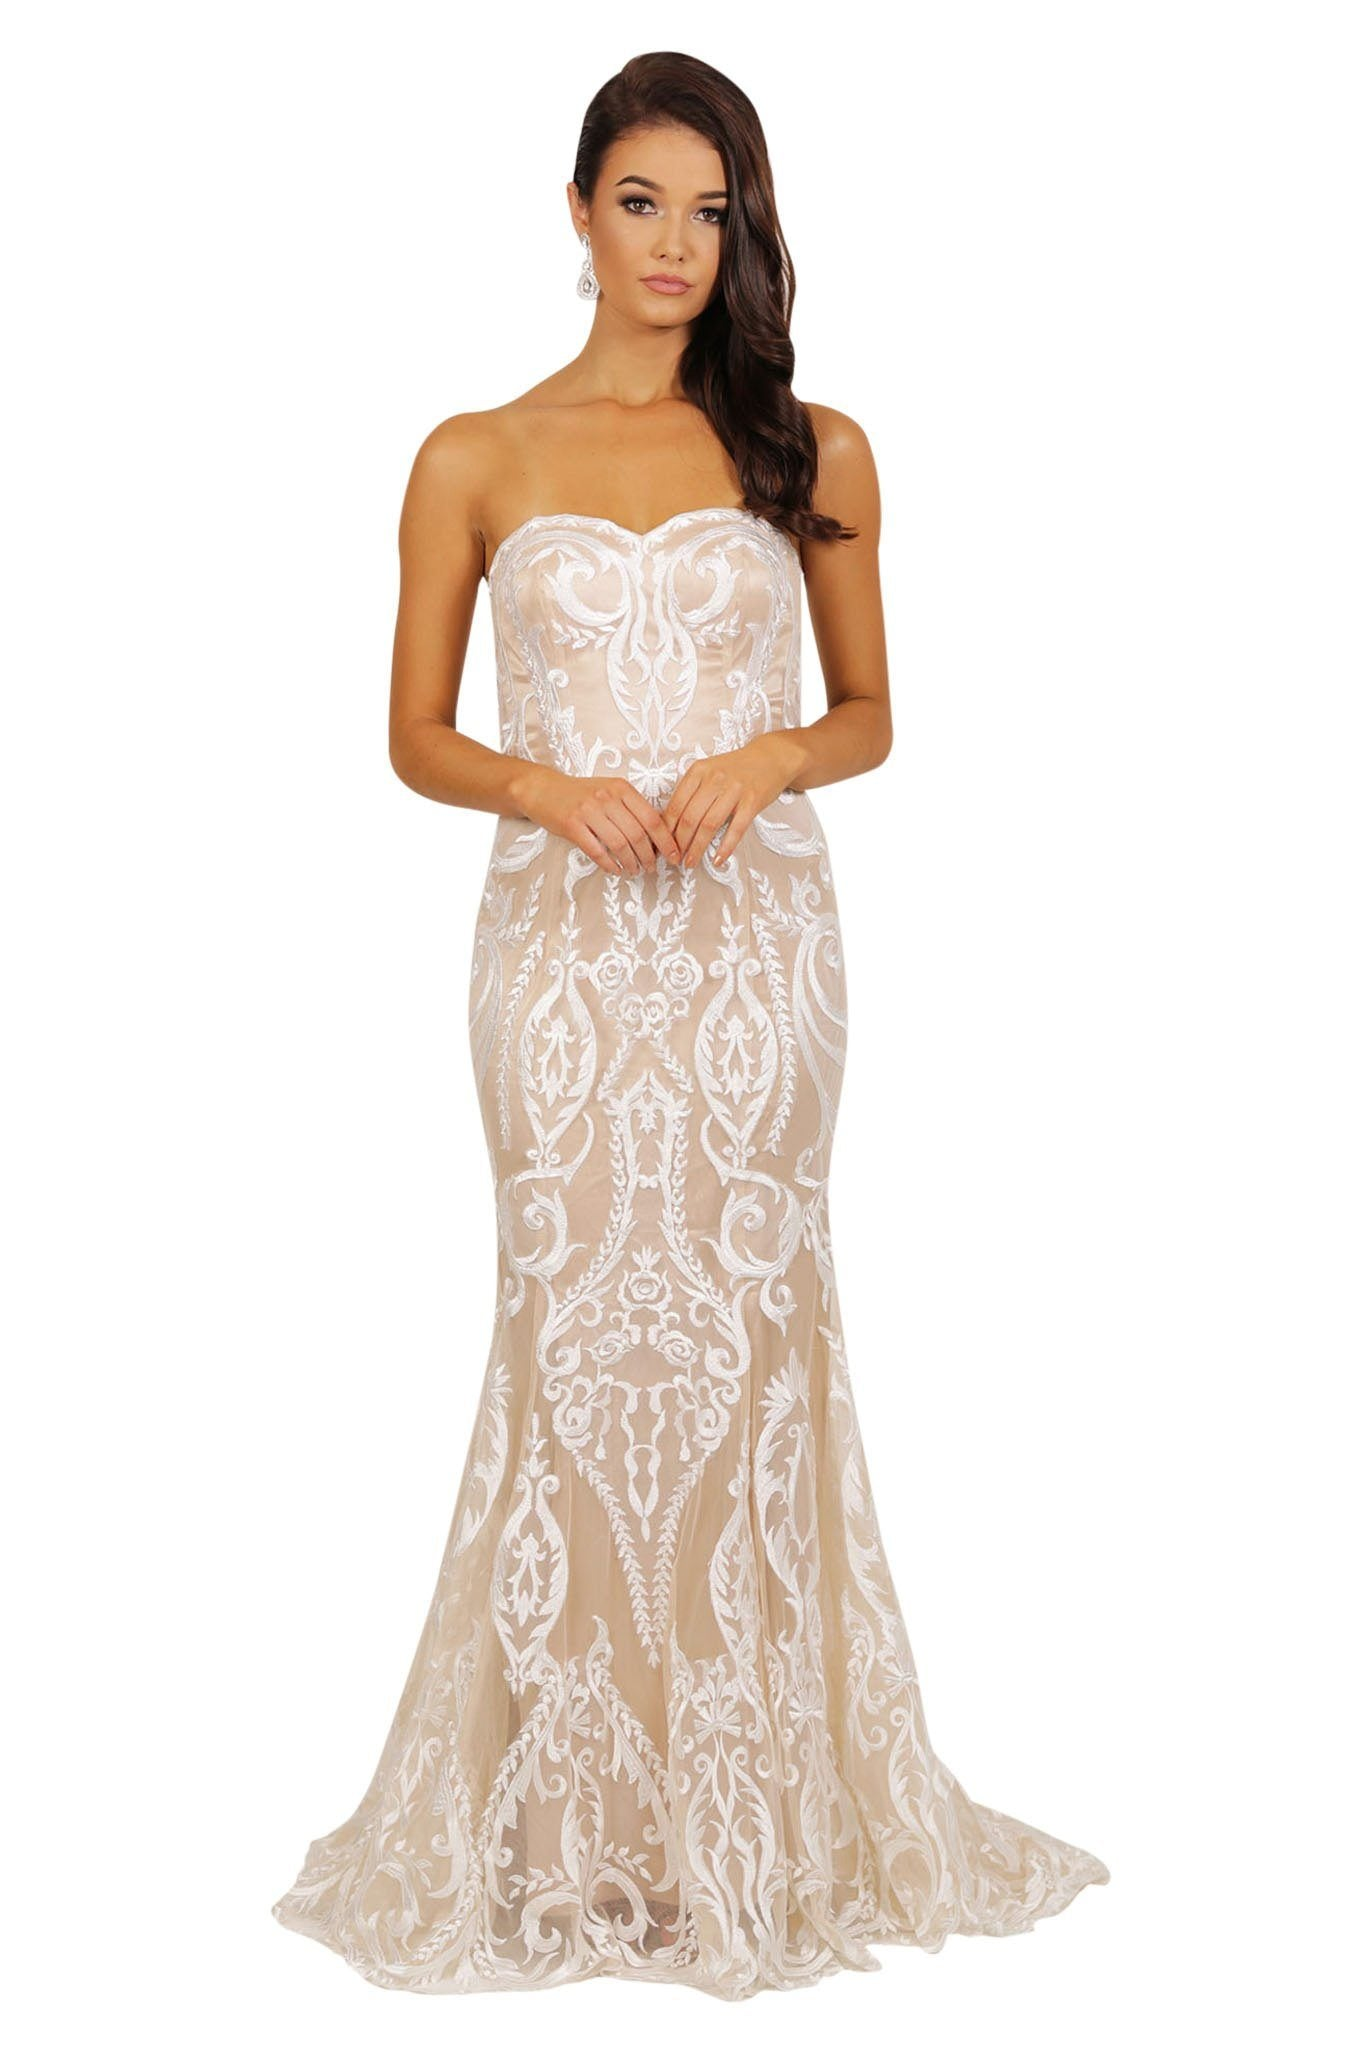 Fitted strapless wedding or formal gown made from white sheer lace applique sewn over beige satin lining, sweetheart neckline, and long train